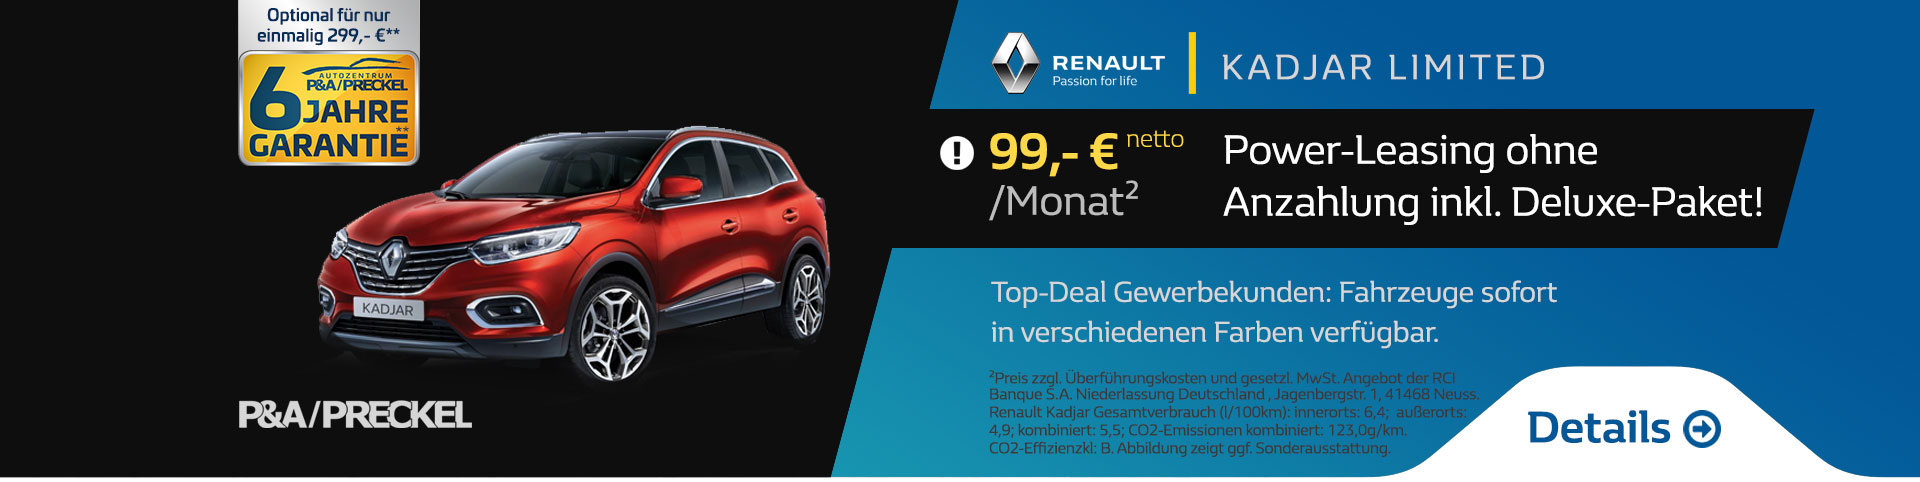 Renault Kadjar Power Leasing 99 Euro